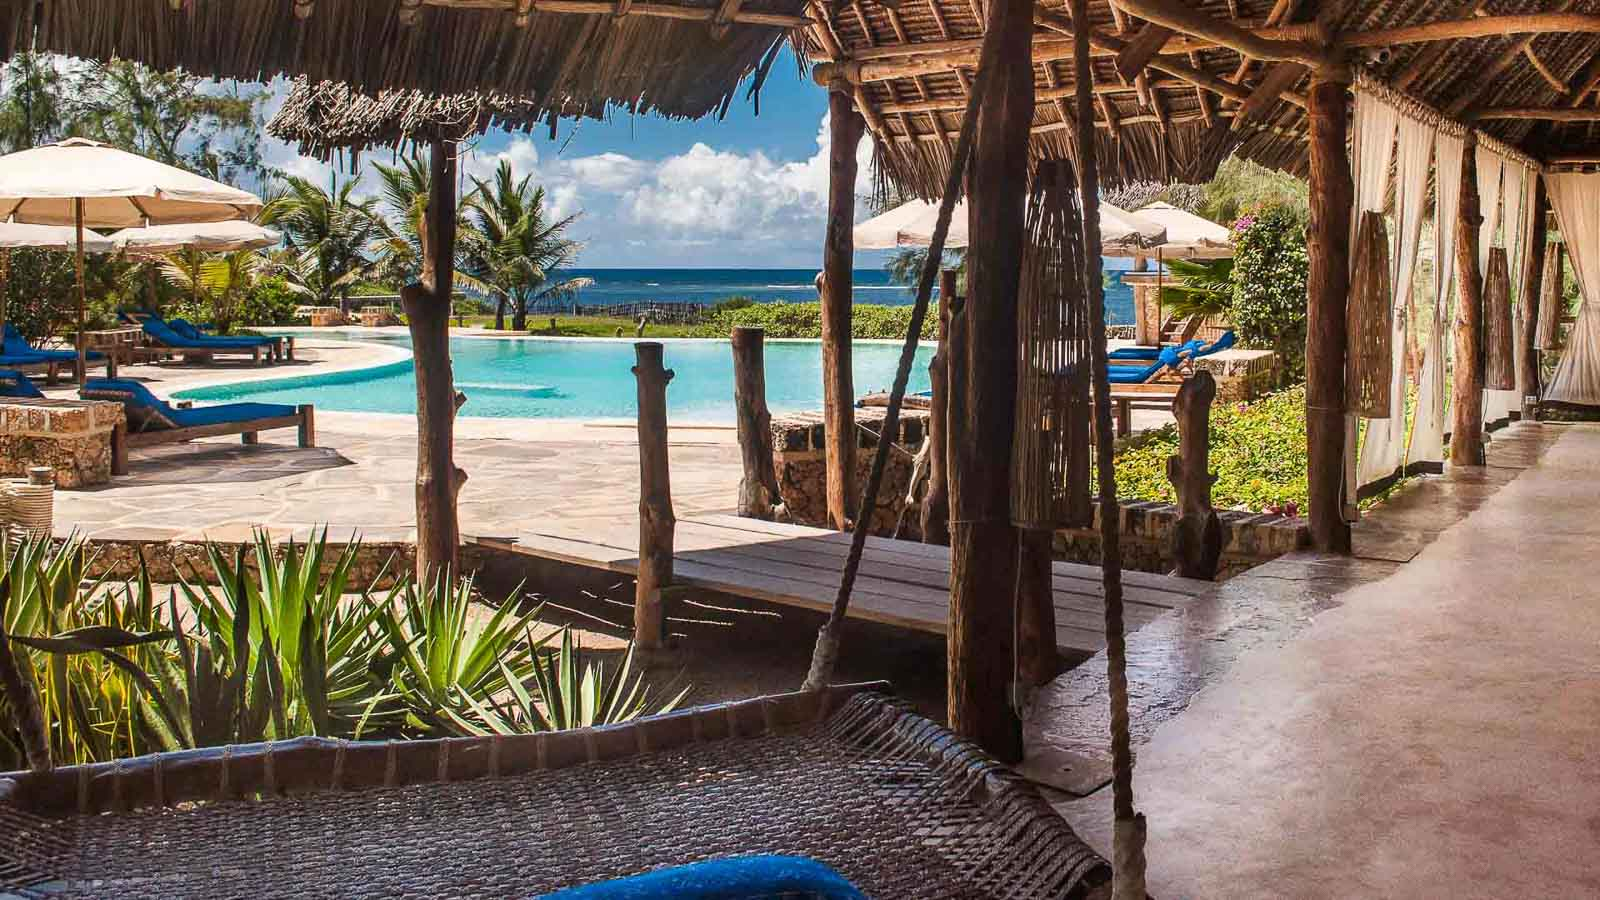 Likely The Best Lodge in Watamu, The Charming Lonno Lodge Watamu